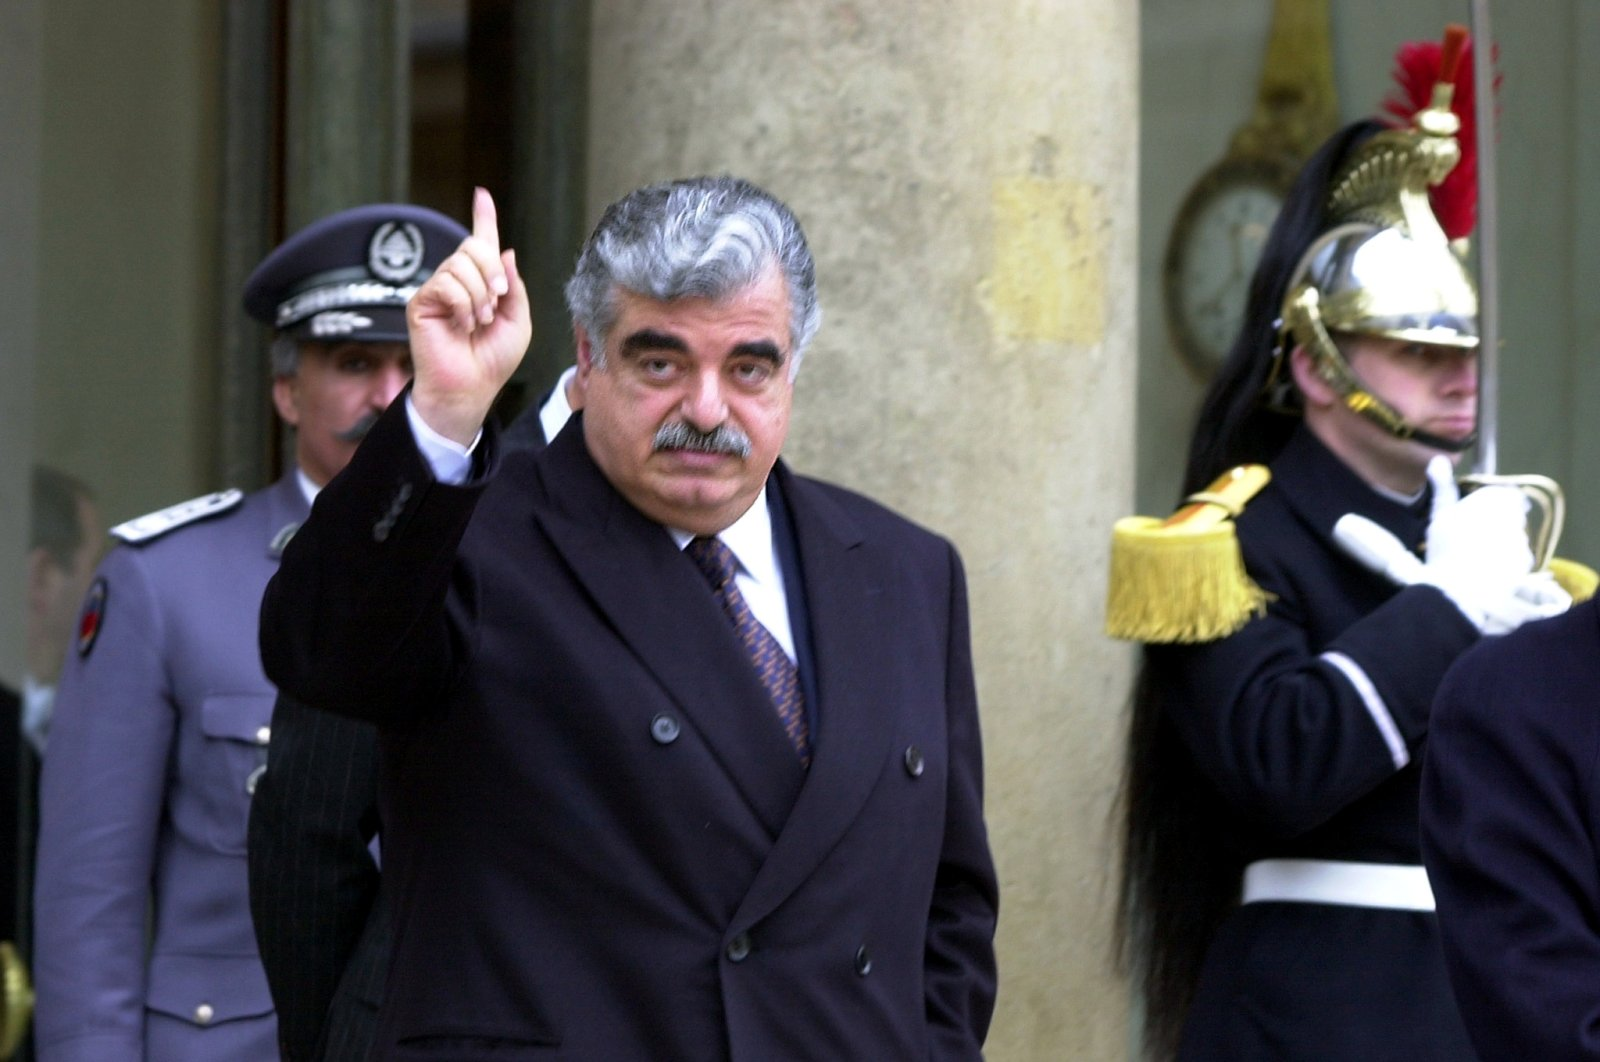 Lebanese Prime Minister Rafik Hariri leaves the Elysee Palace following a meeting with French President Jacques Chirac, Paris, Feb. 27, 2001. (REUTERS Photo)